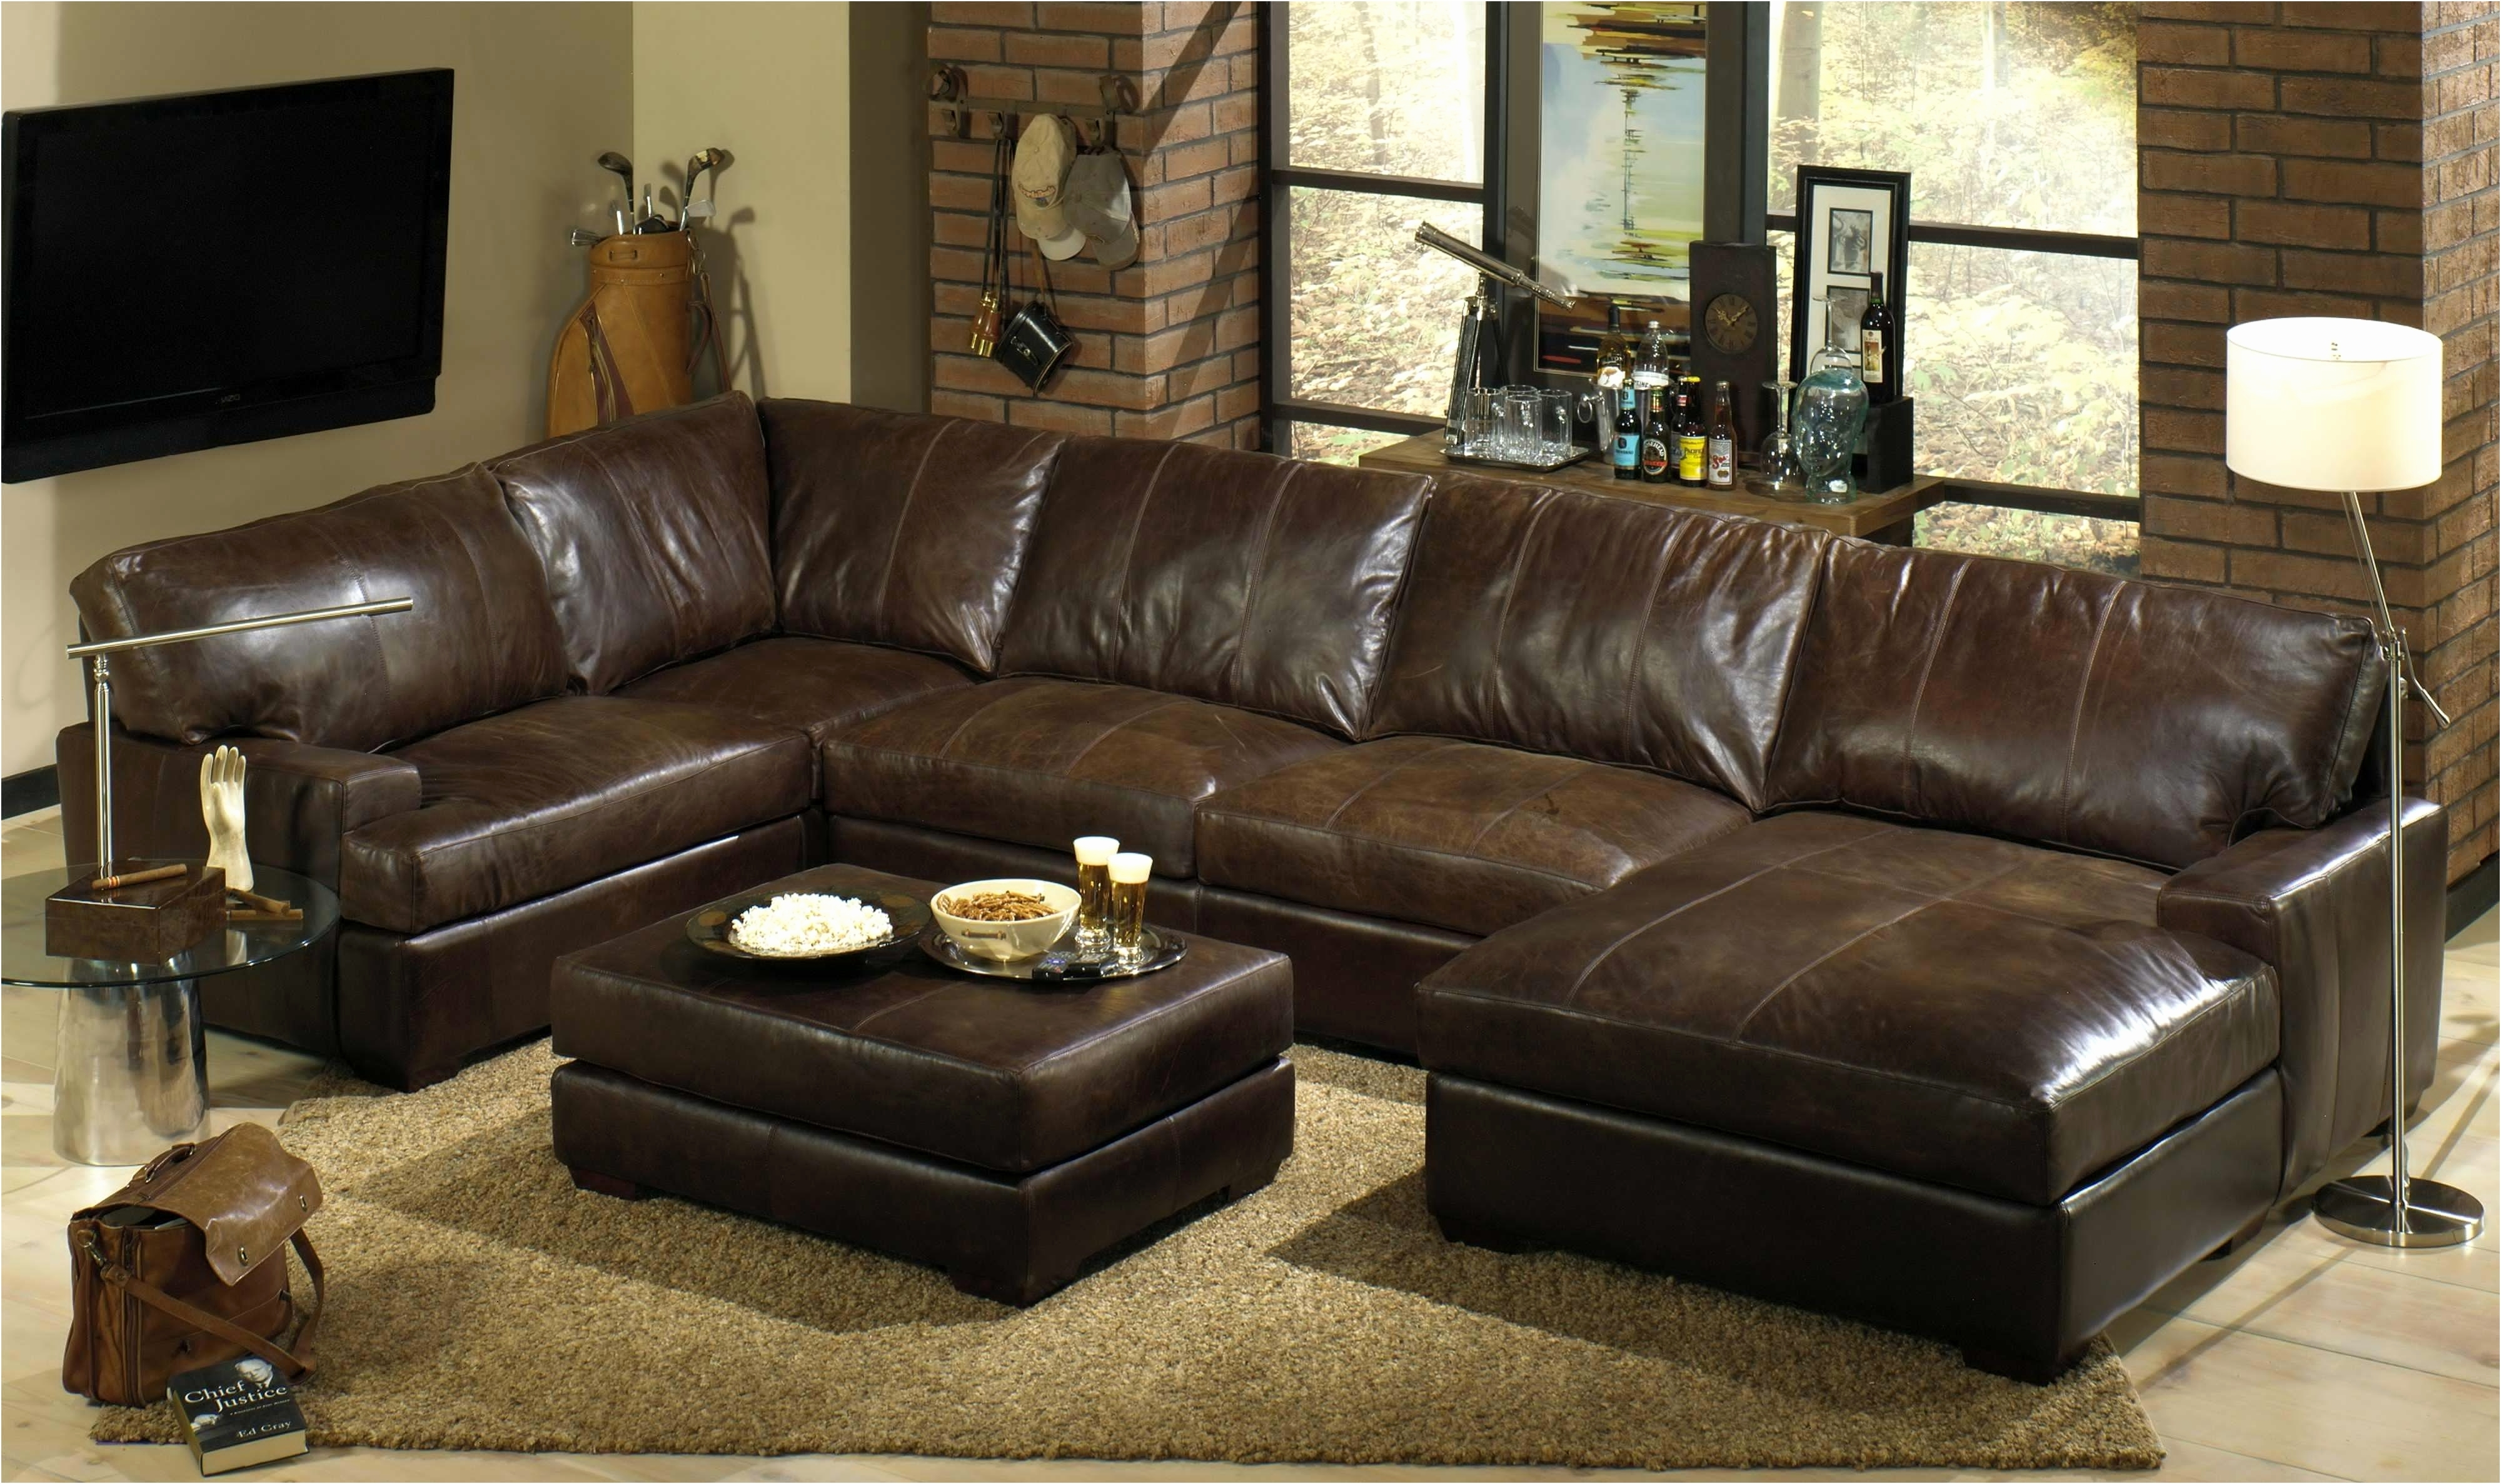 Most Recently Released Double Chaise Loveseat Leather Loveseat With Chaise Large With Regard To Leather Couches With Chaise (View 9 of 15)